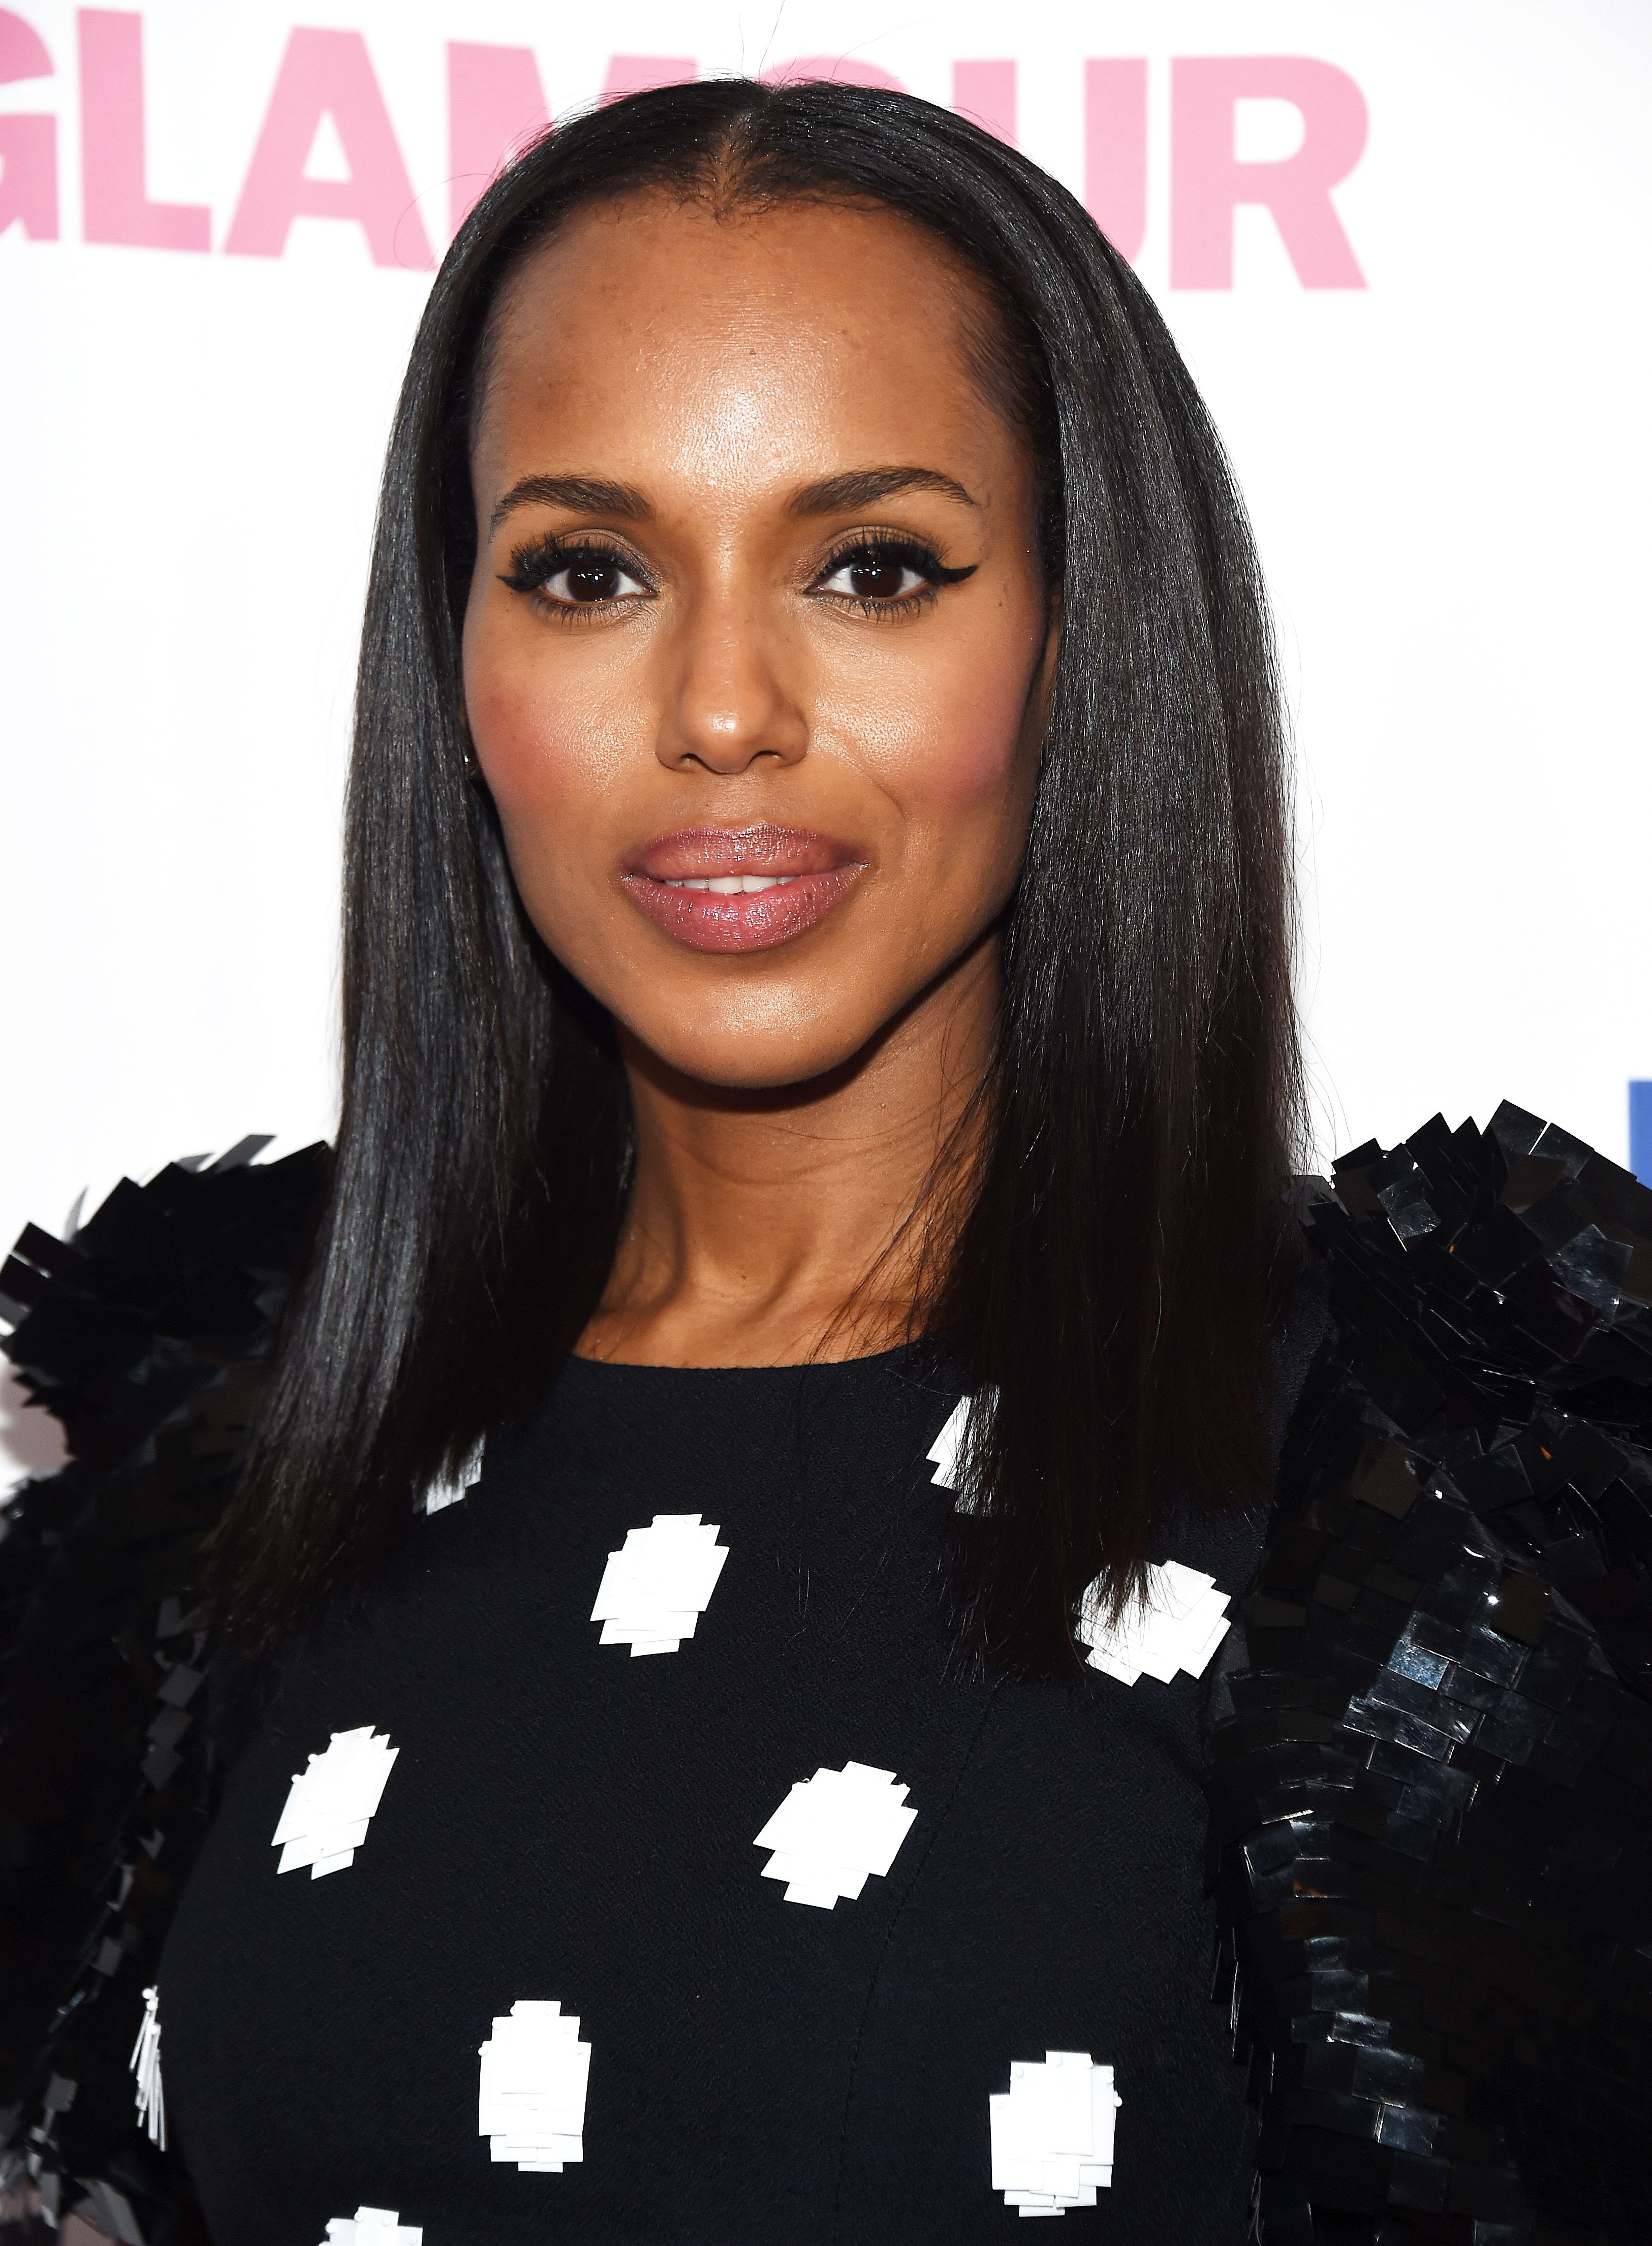 Kerry Washington Stopped Relaxing Hair for Her Kids